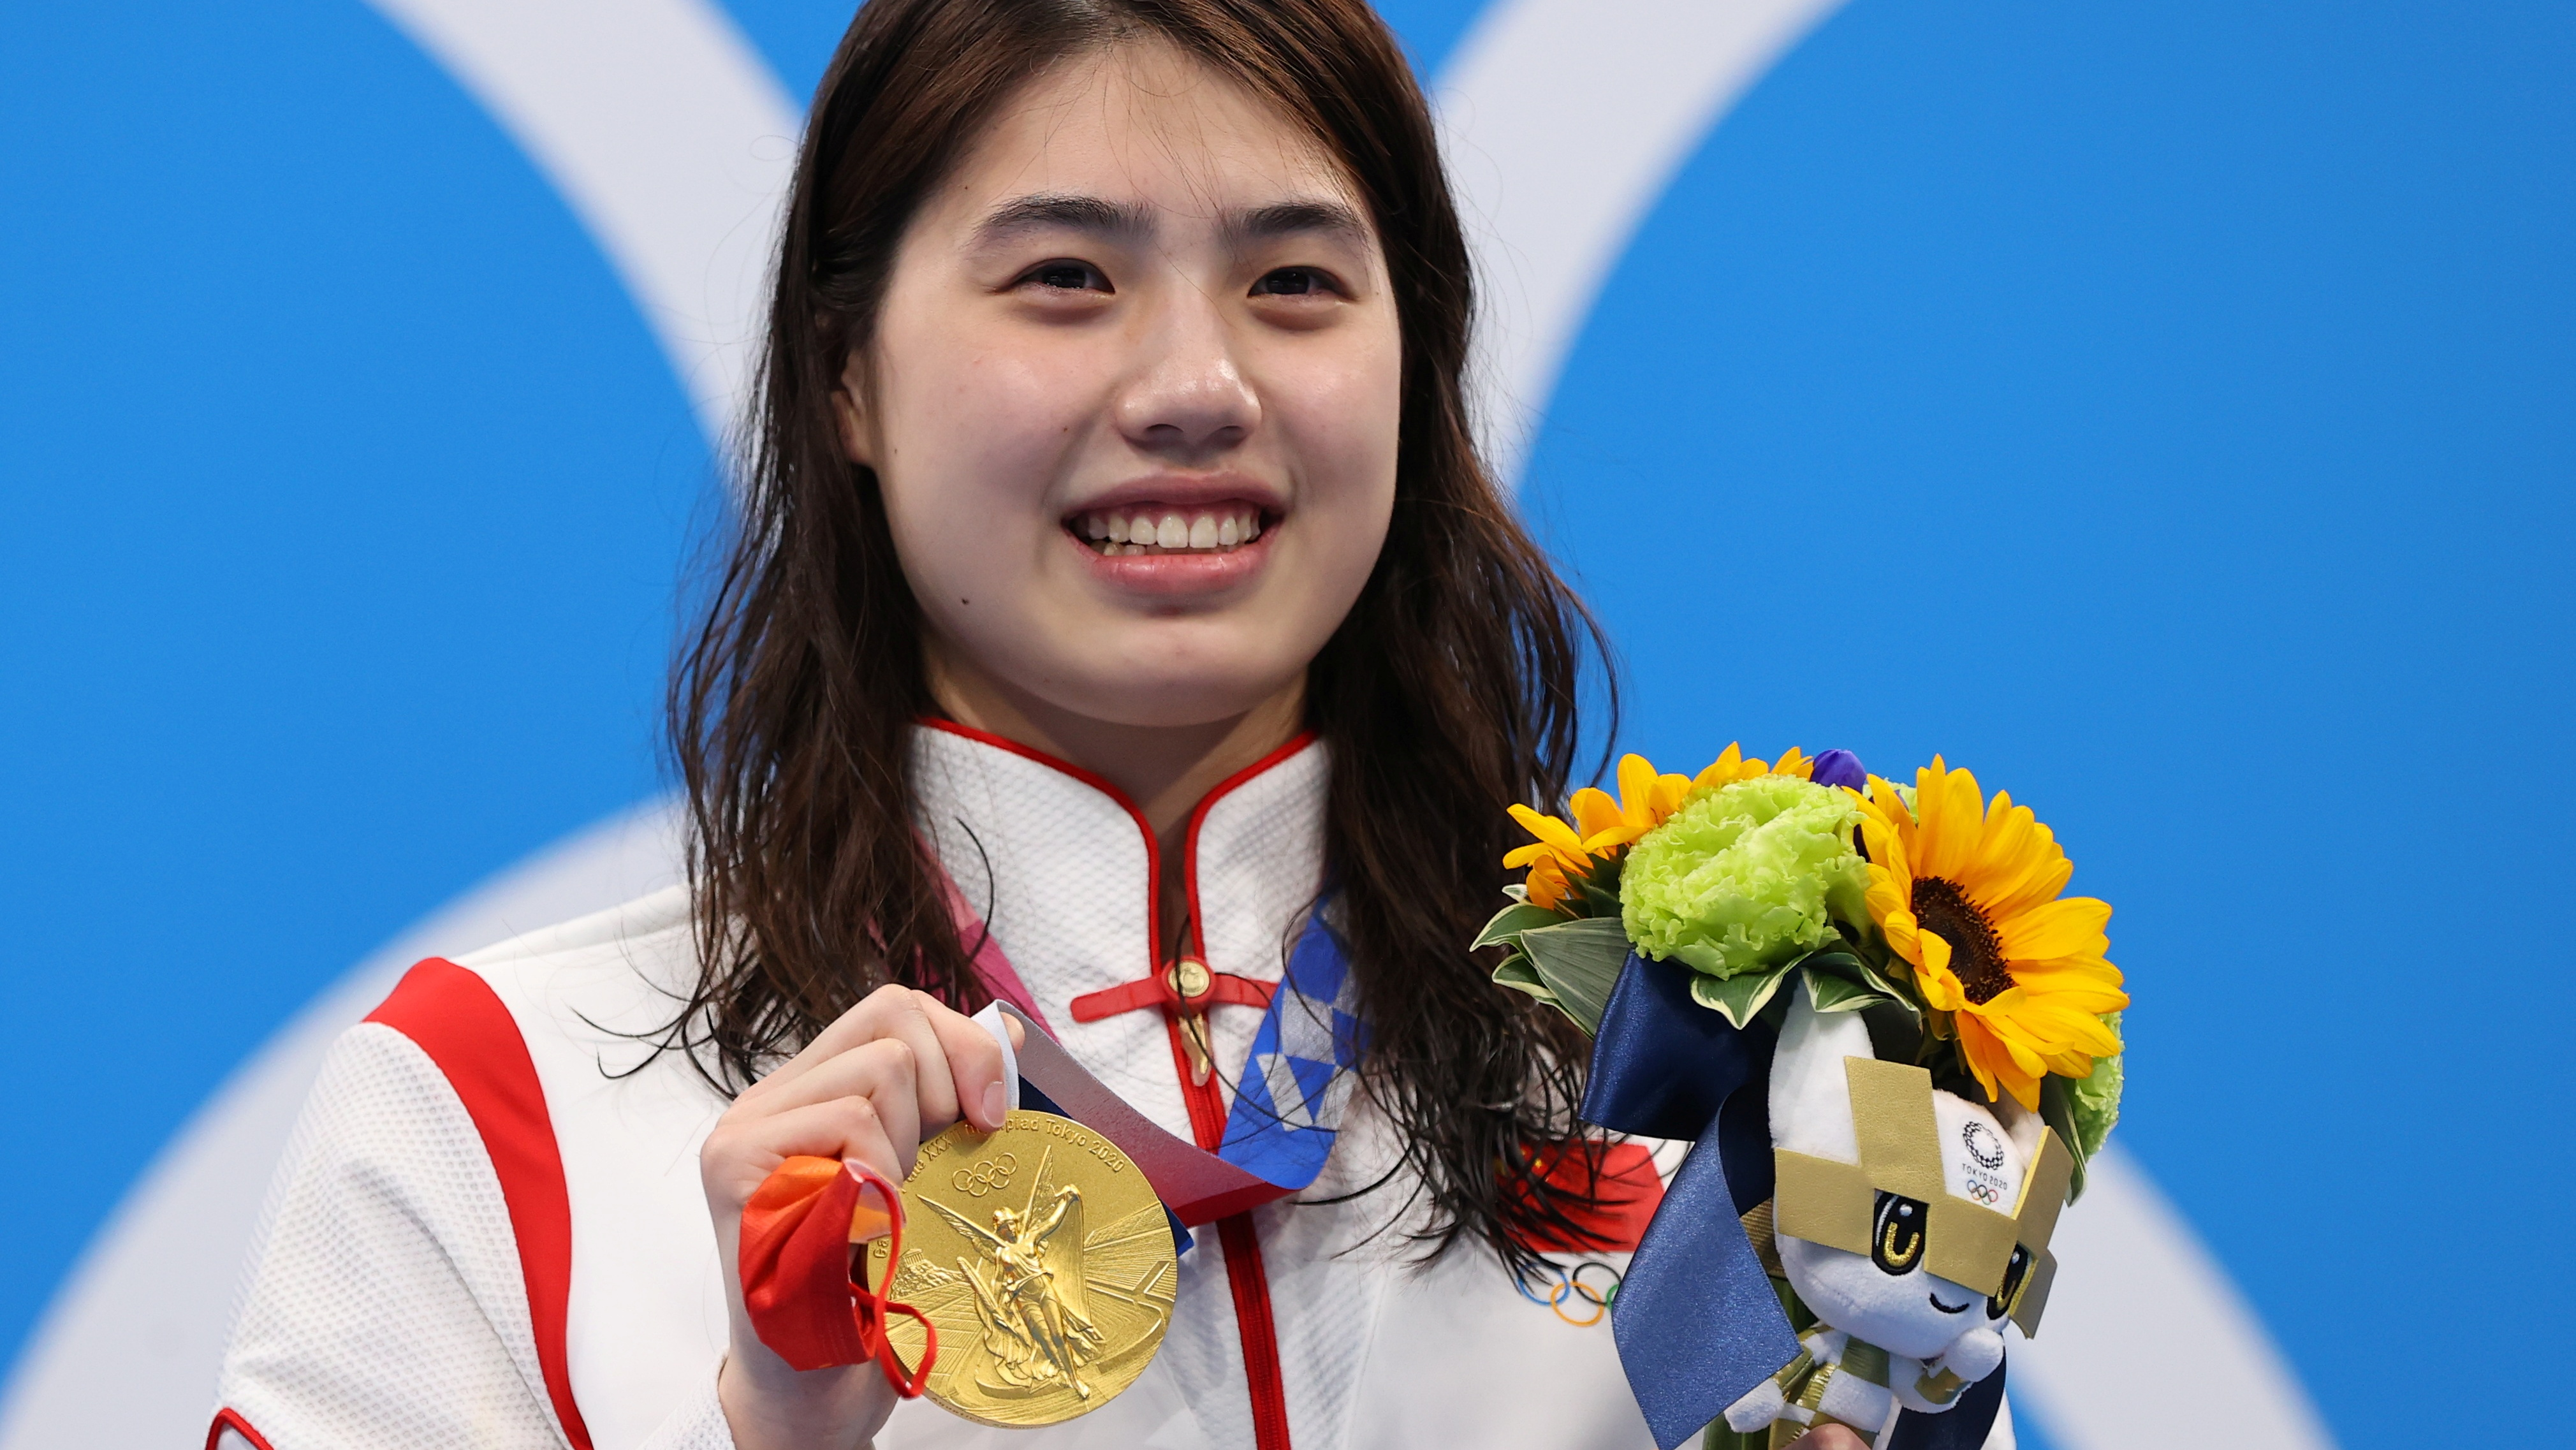 Tokyo 2020 Olympics - Swimming - Women's 200m Butterfly - Medal Ceremony - Tokyo Aquatics Centre - Tokyo, Japan - July 29, 2021. Gold medallist Zhang Yufei of China poses on the podium. REUTERS/Marko Djurica